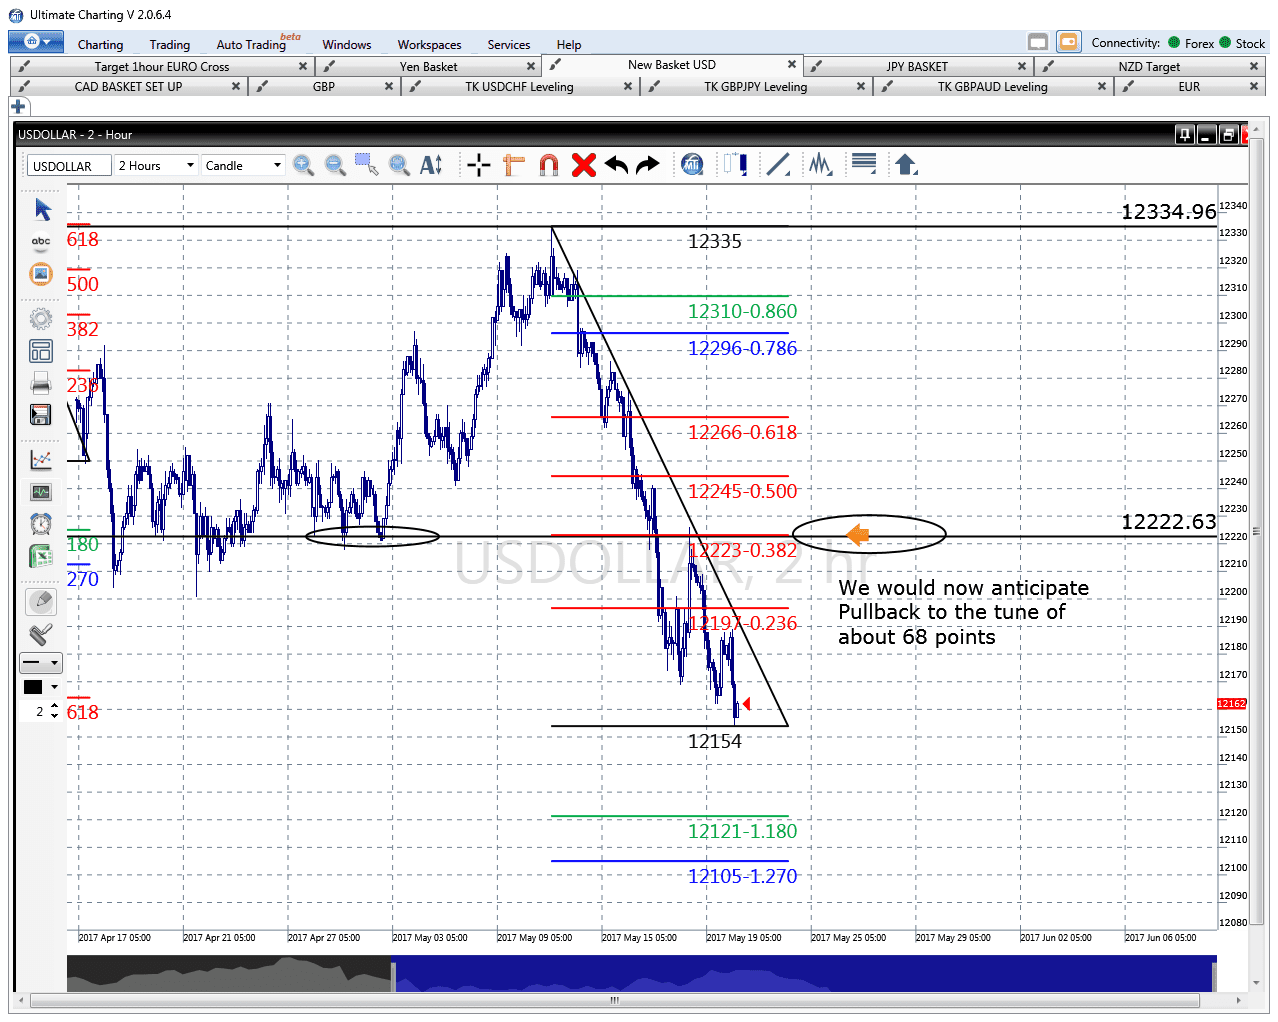 USDX chart gives the Green Light on USD/JPY Long side